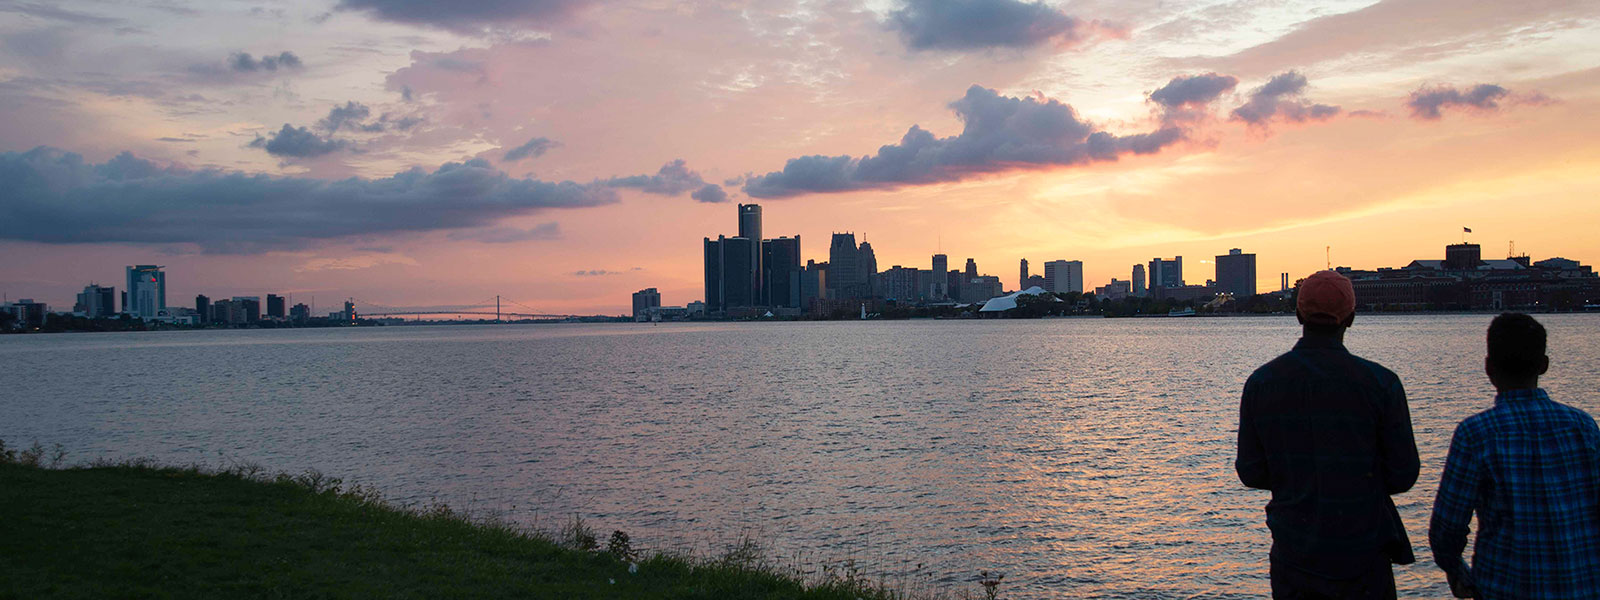 Sunset fishing on Detroit River